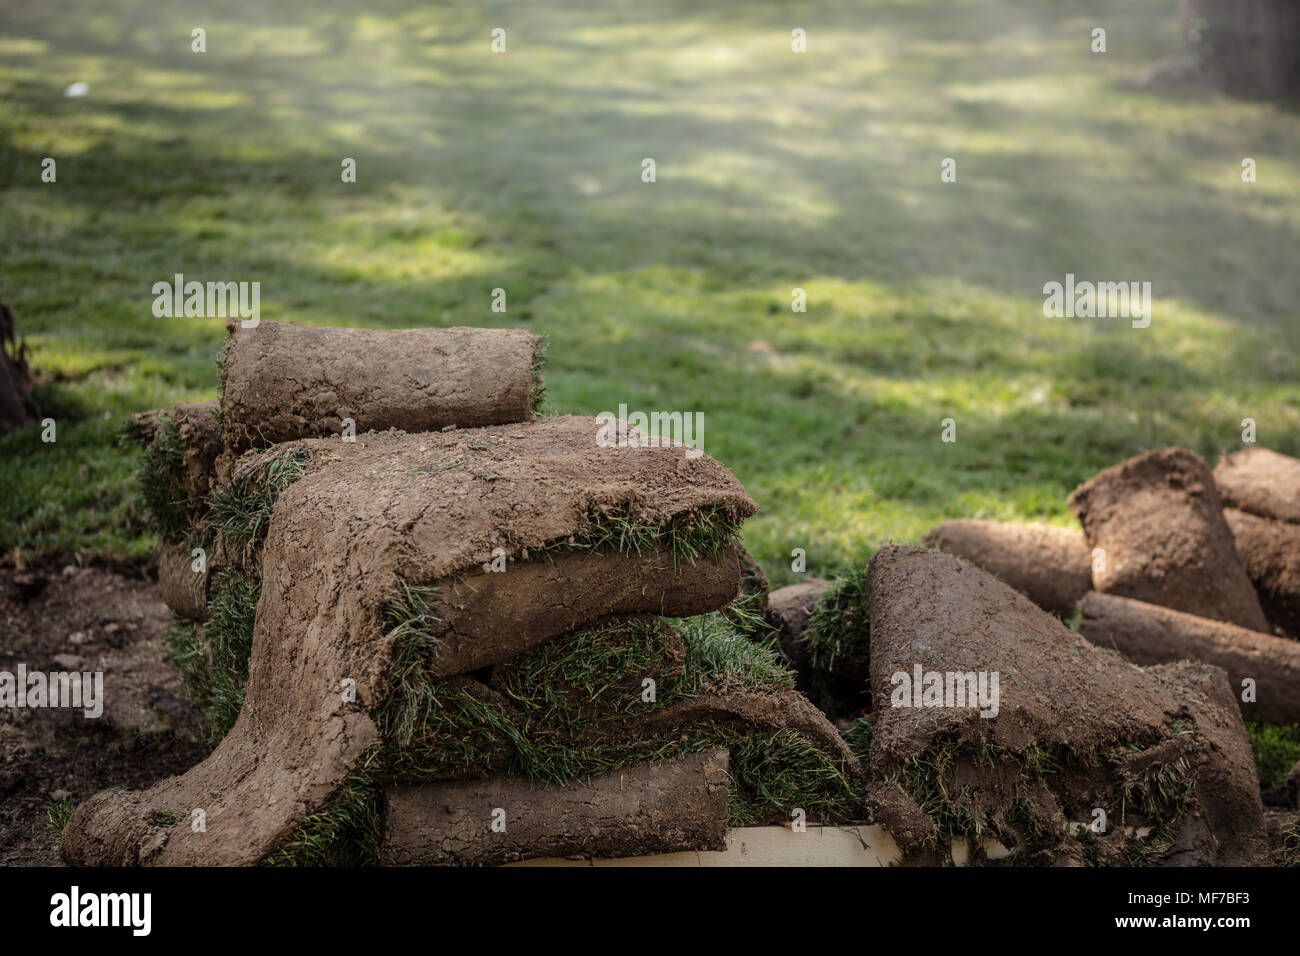 Grass Turfs Rolls On The wooden Pallet Preparing To New Grass Installation On Foggy Background - Stock Image